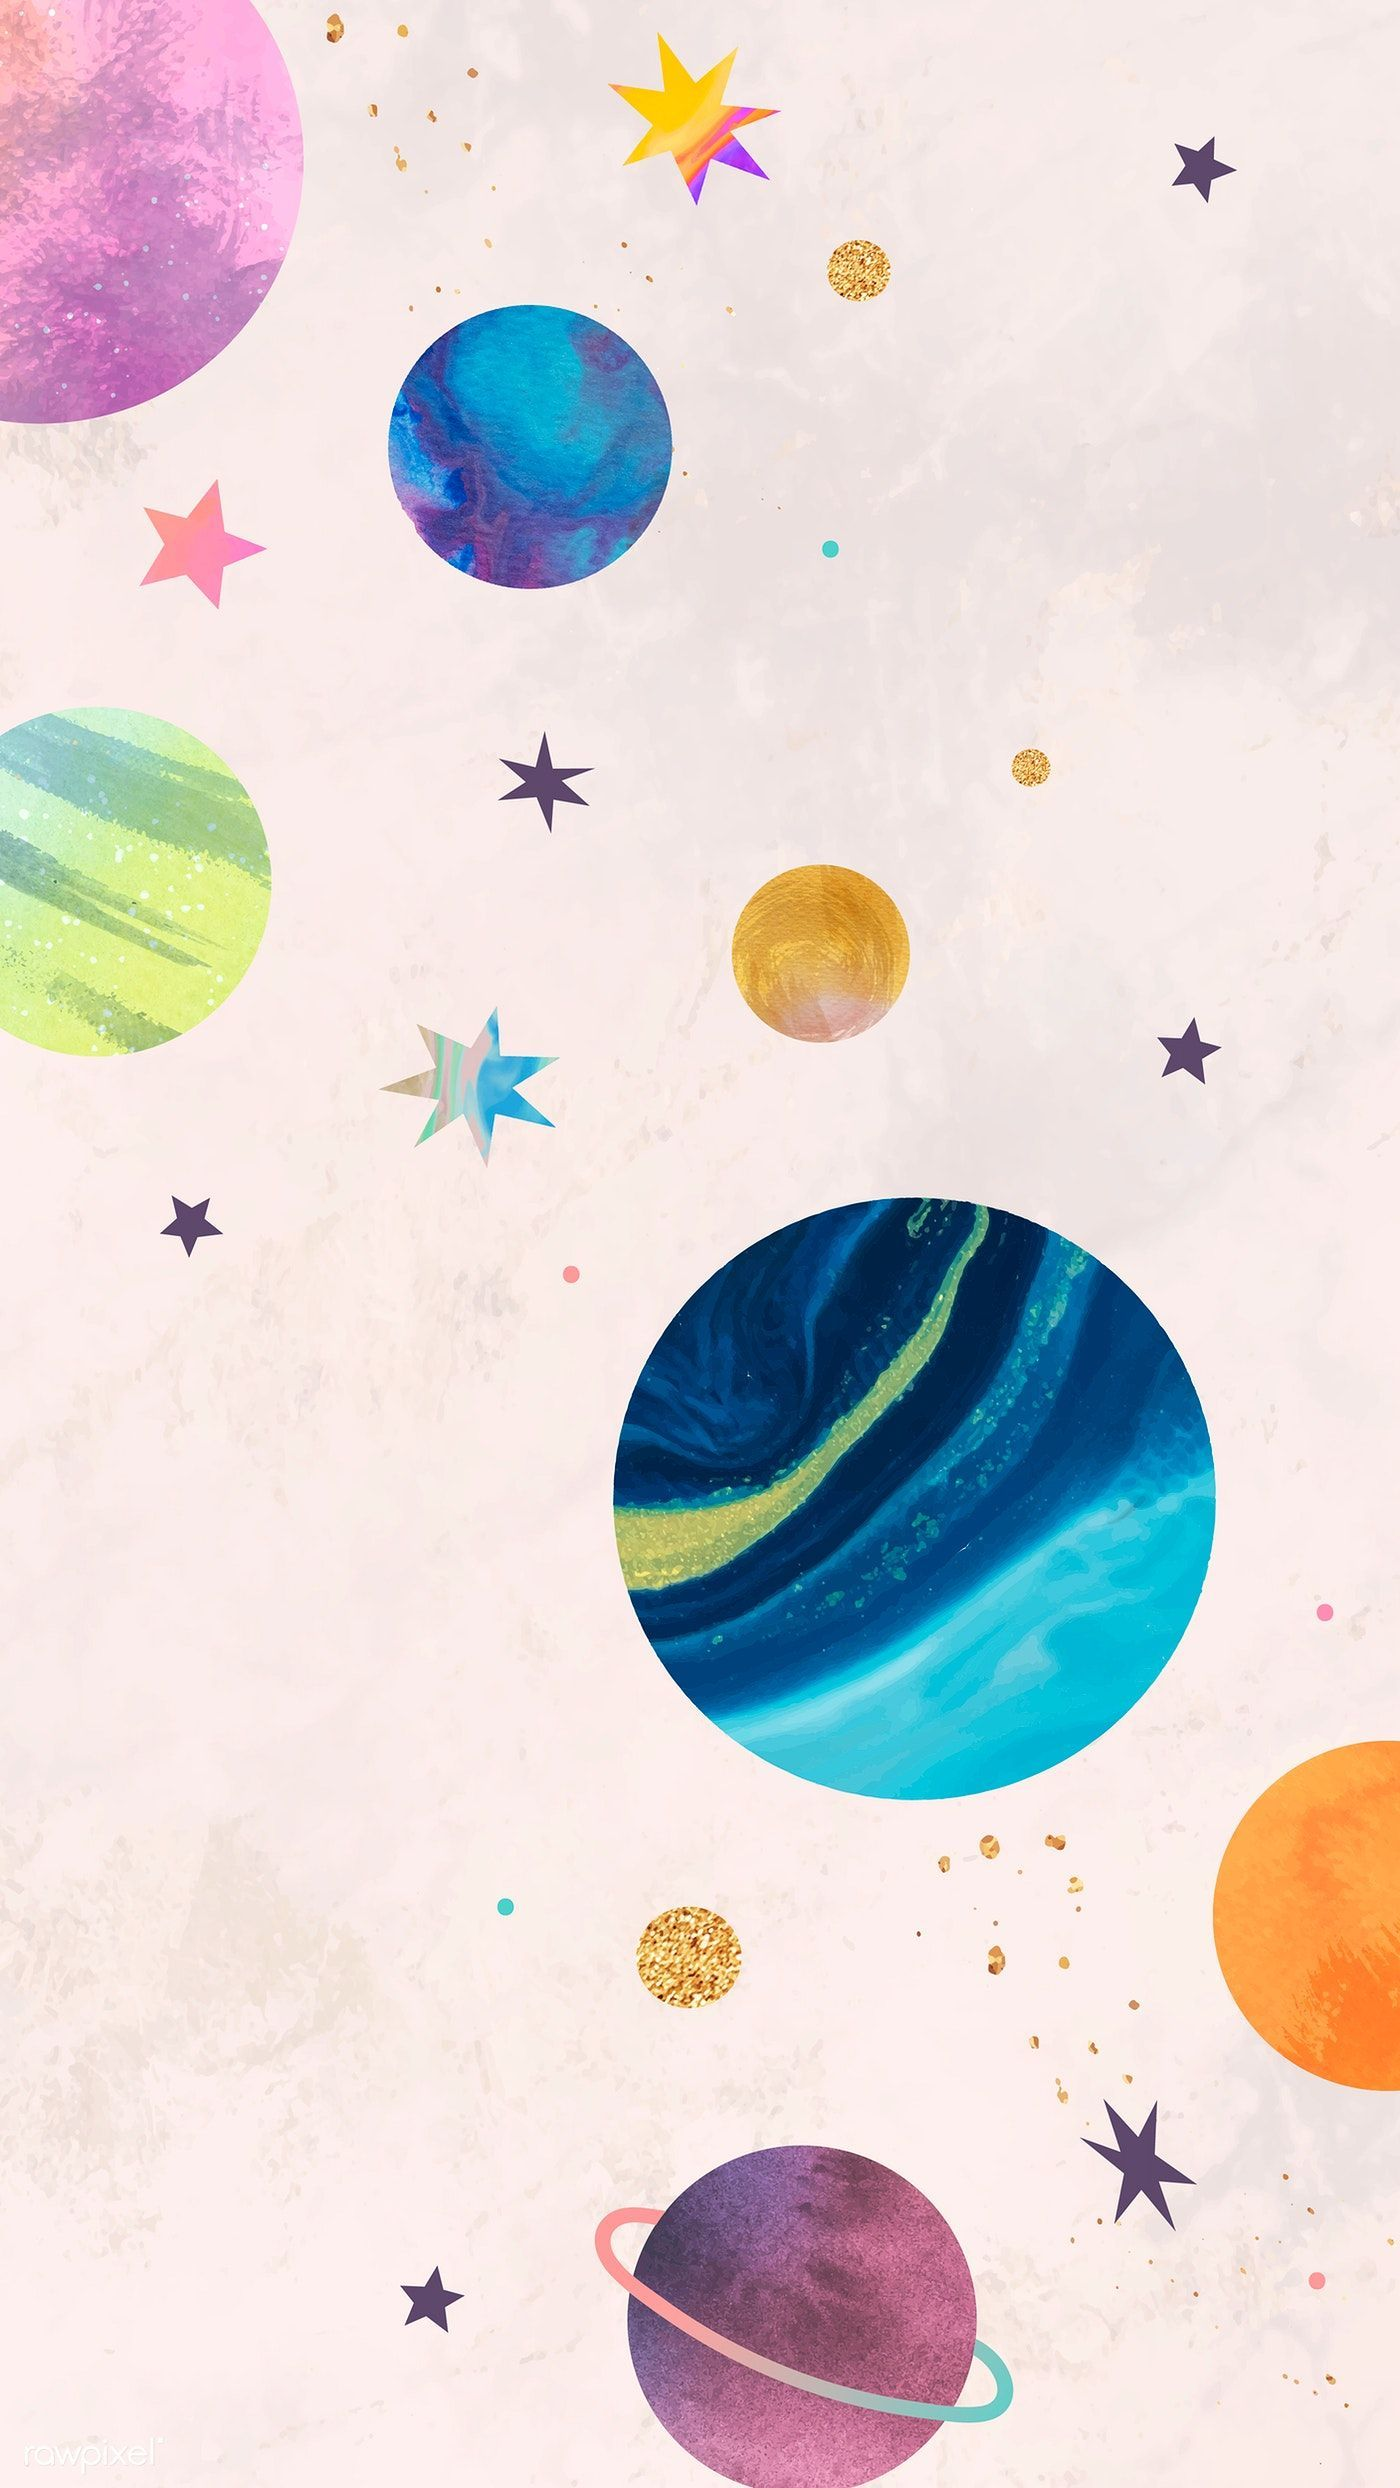 Colorful Galaxy Watercolor Doodle On Pastel Background Mobile Phone Wallpaper Vector Premium Watercolor Wallpaper Iphone Watercolor Galaxy Colorful Wallpaper